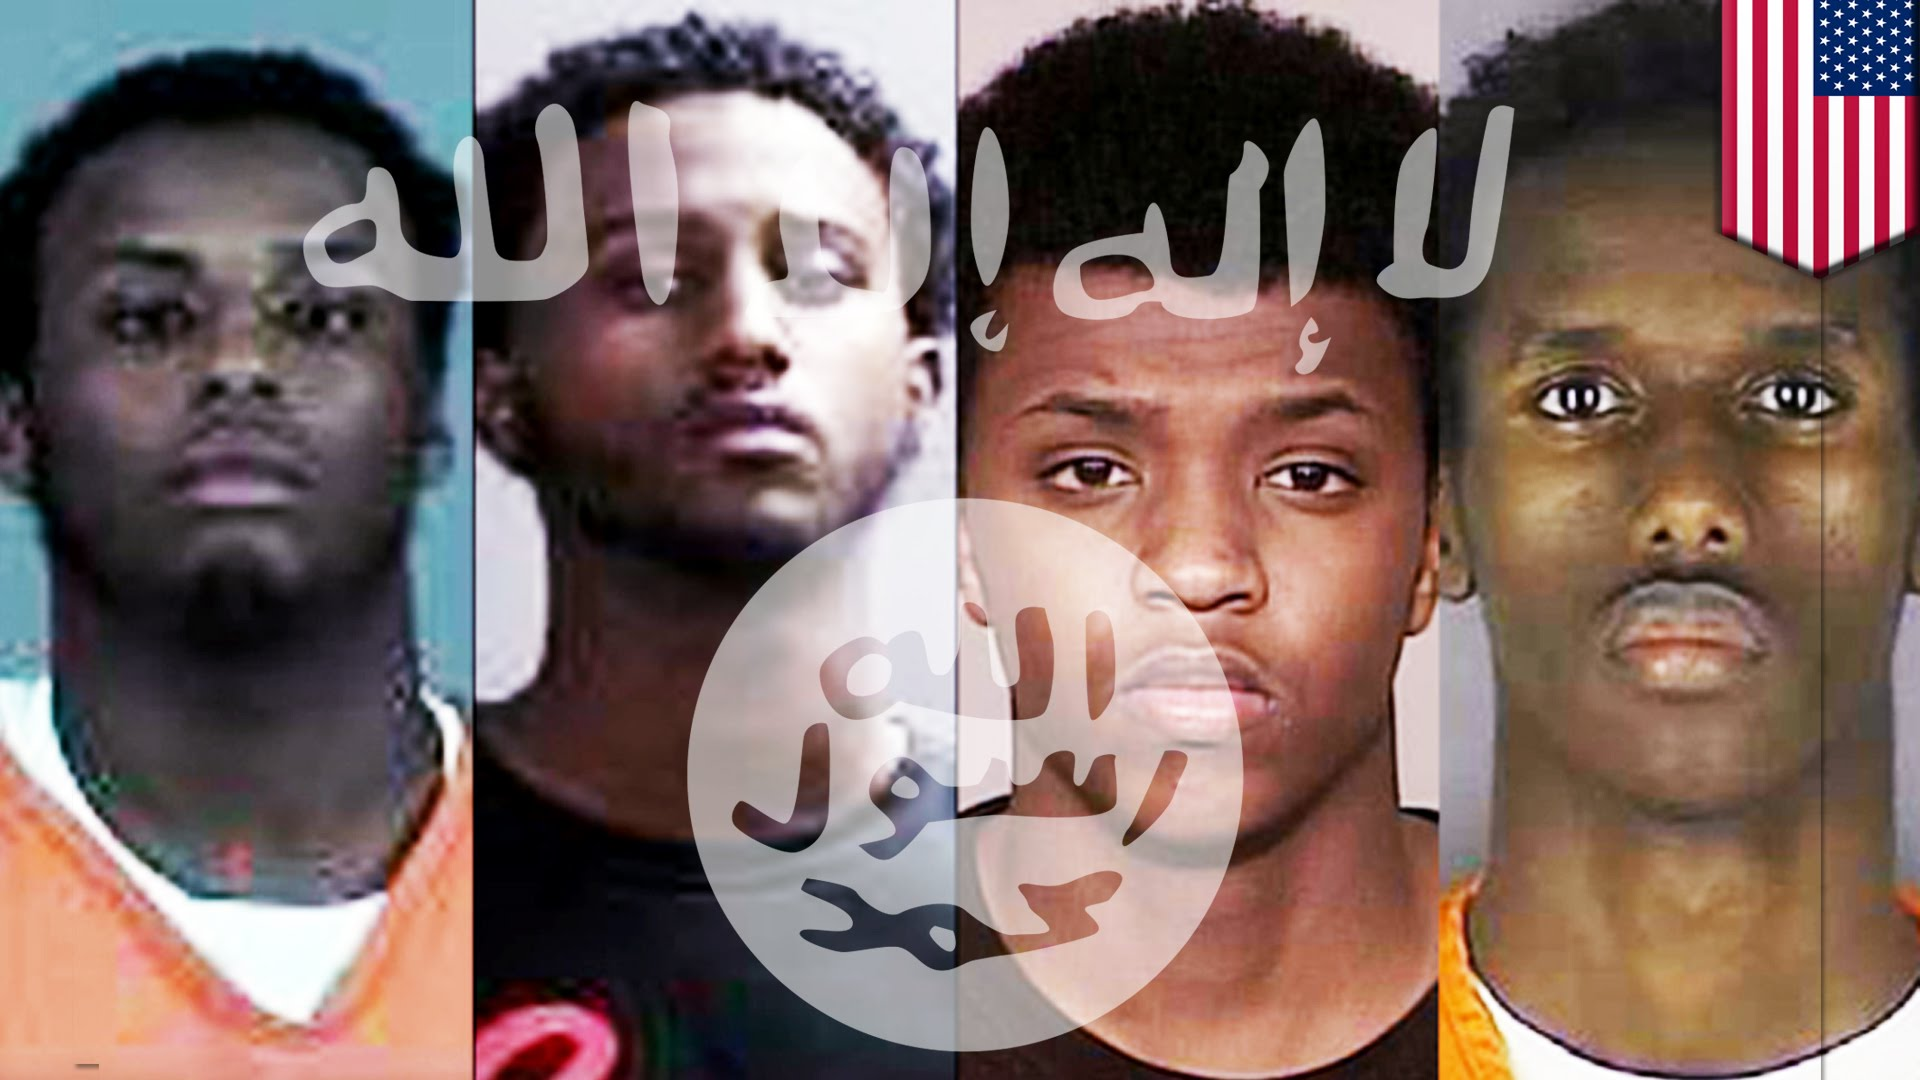 Seven Minnesota Men Indicted for Conspiracy to Provide Material Support to ISIS